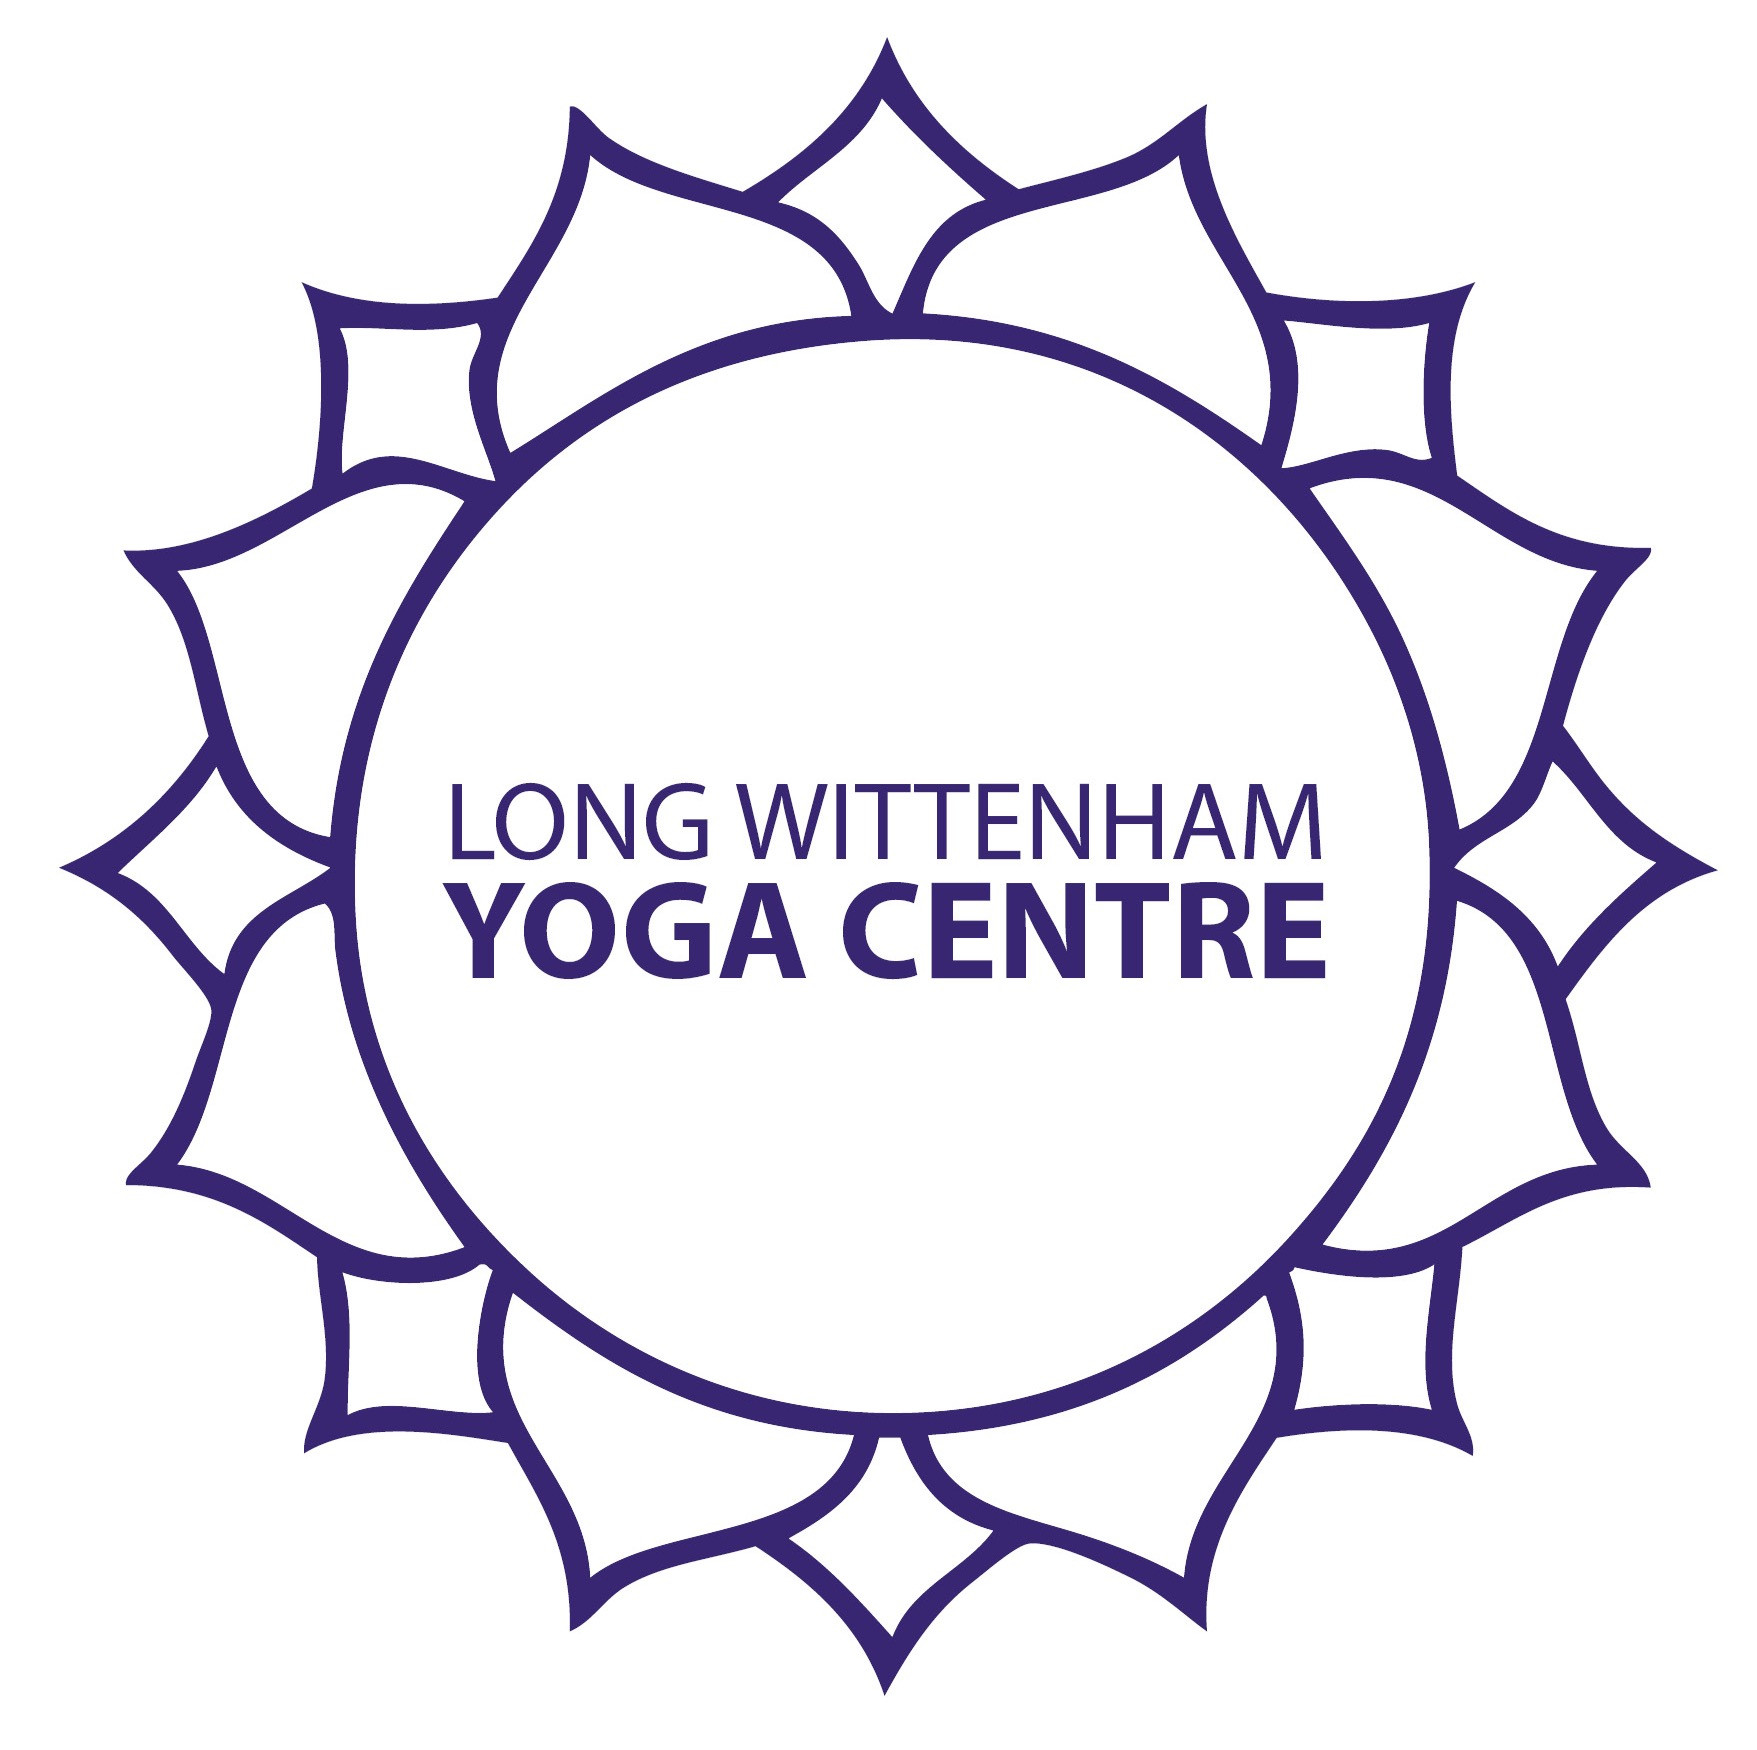 ZOOM Yoga for all Tuesday 10-11am